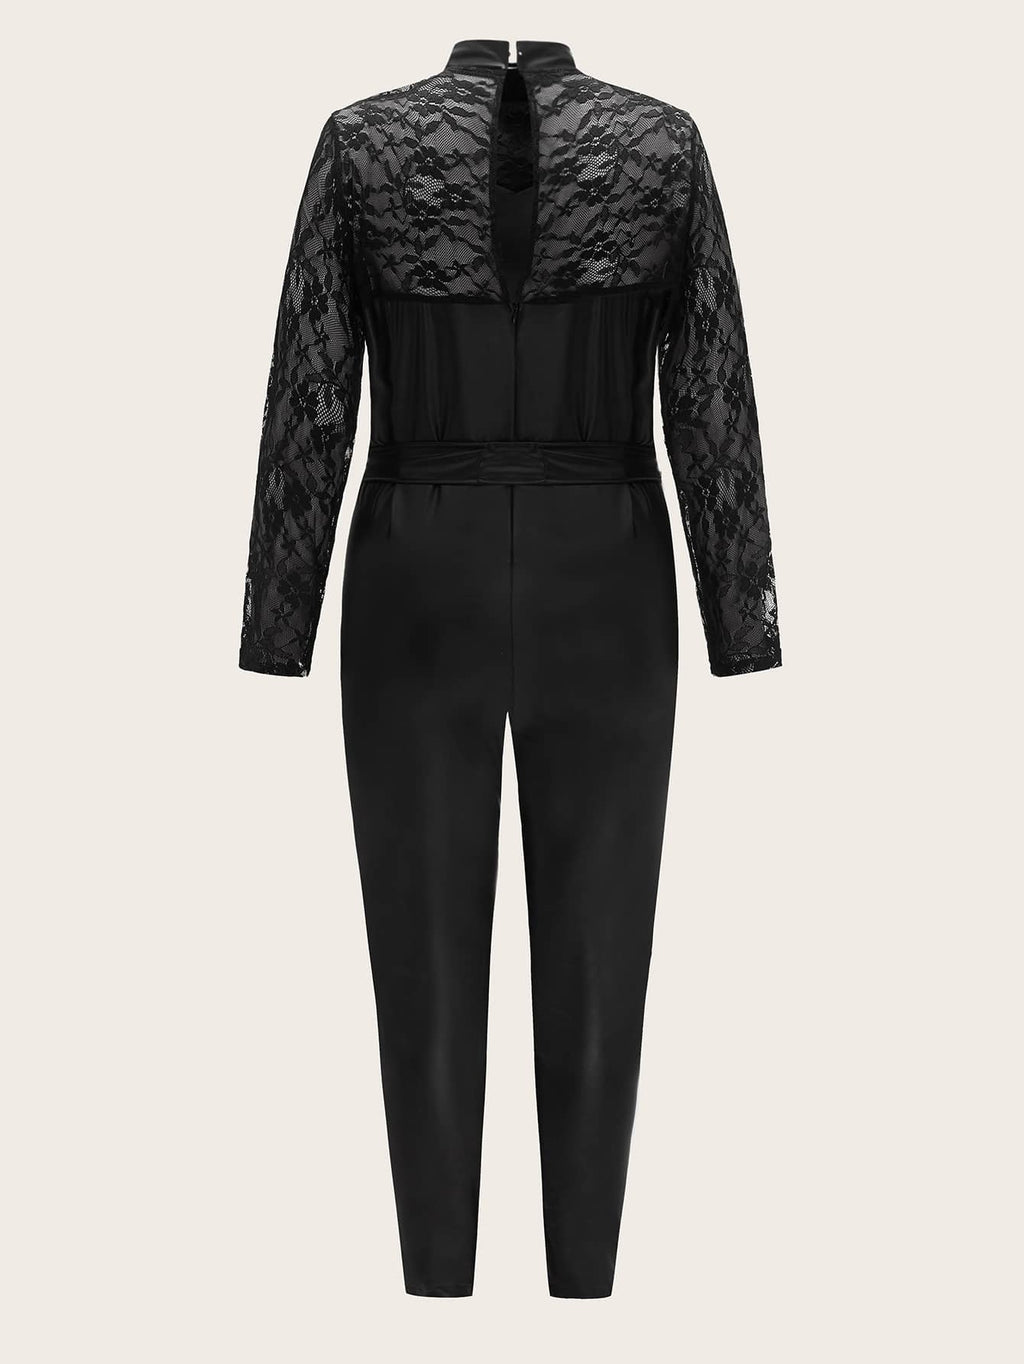 Plus Size Glam Contrast Lace Belted PU Leather Jumpsuit